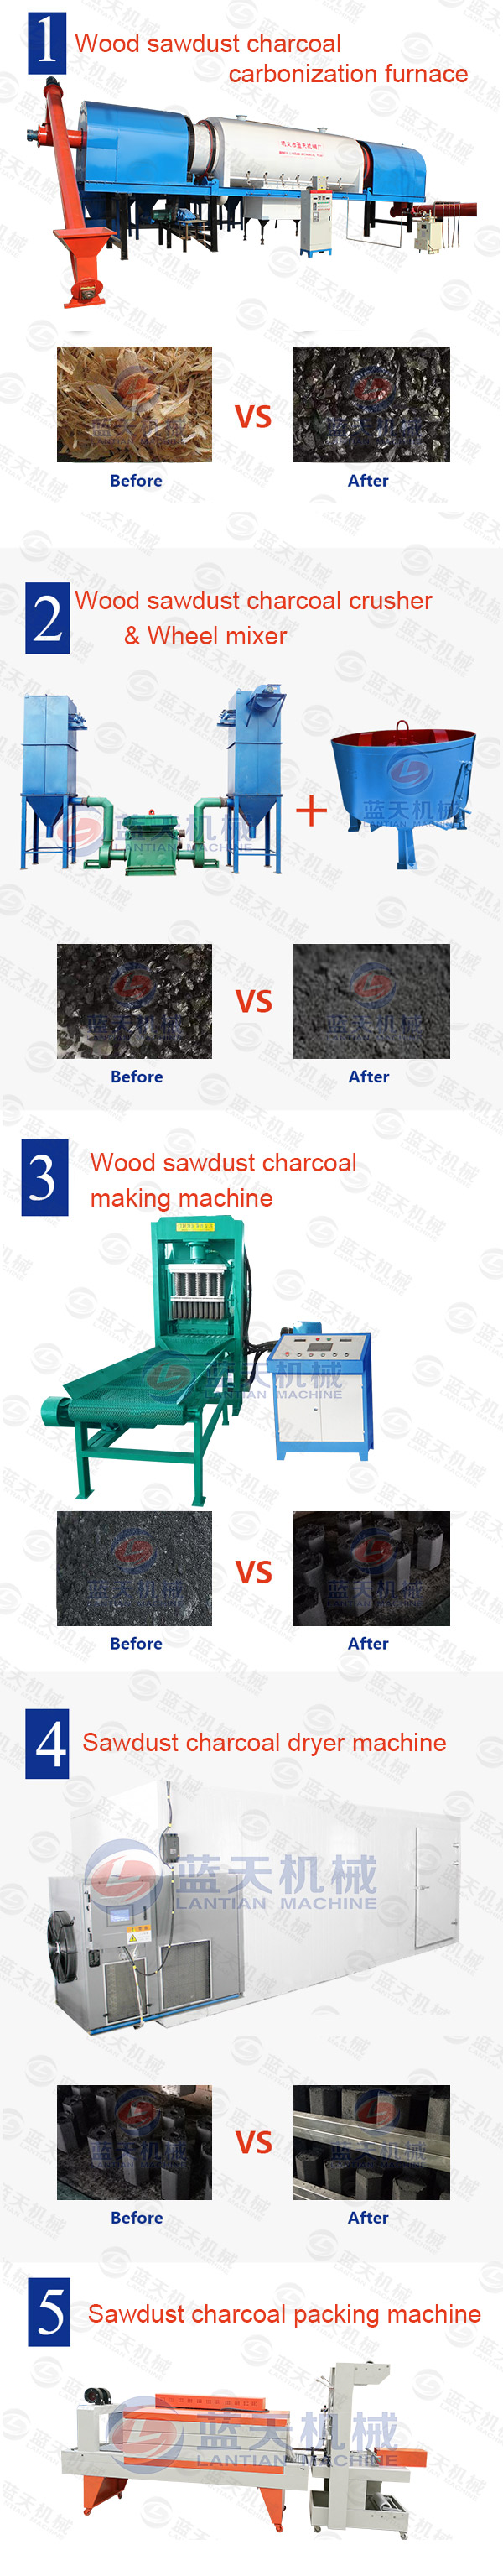 Product line of sawdust charcoal making machine